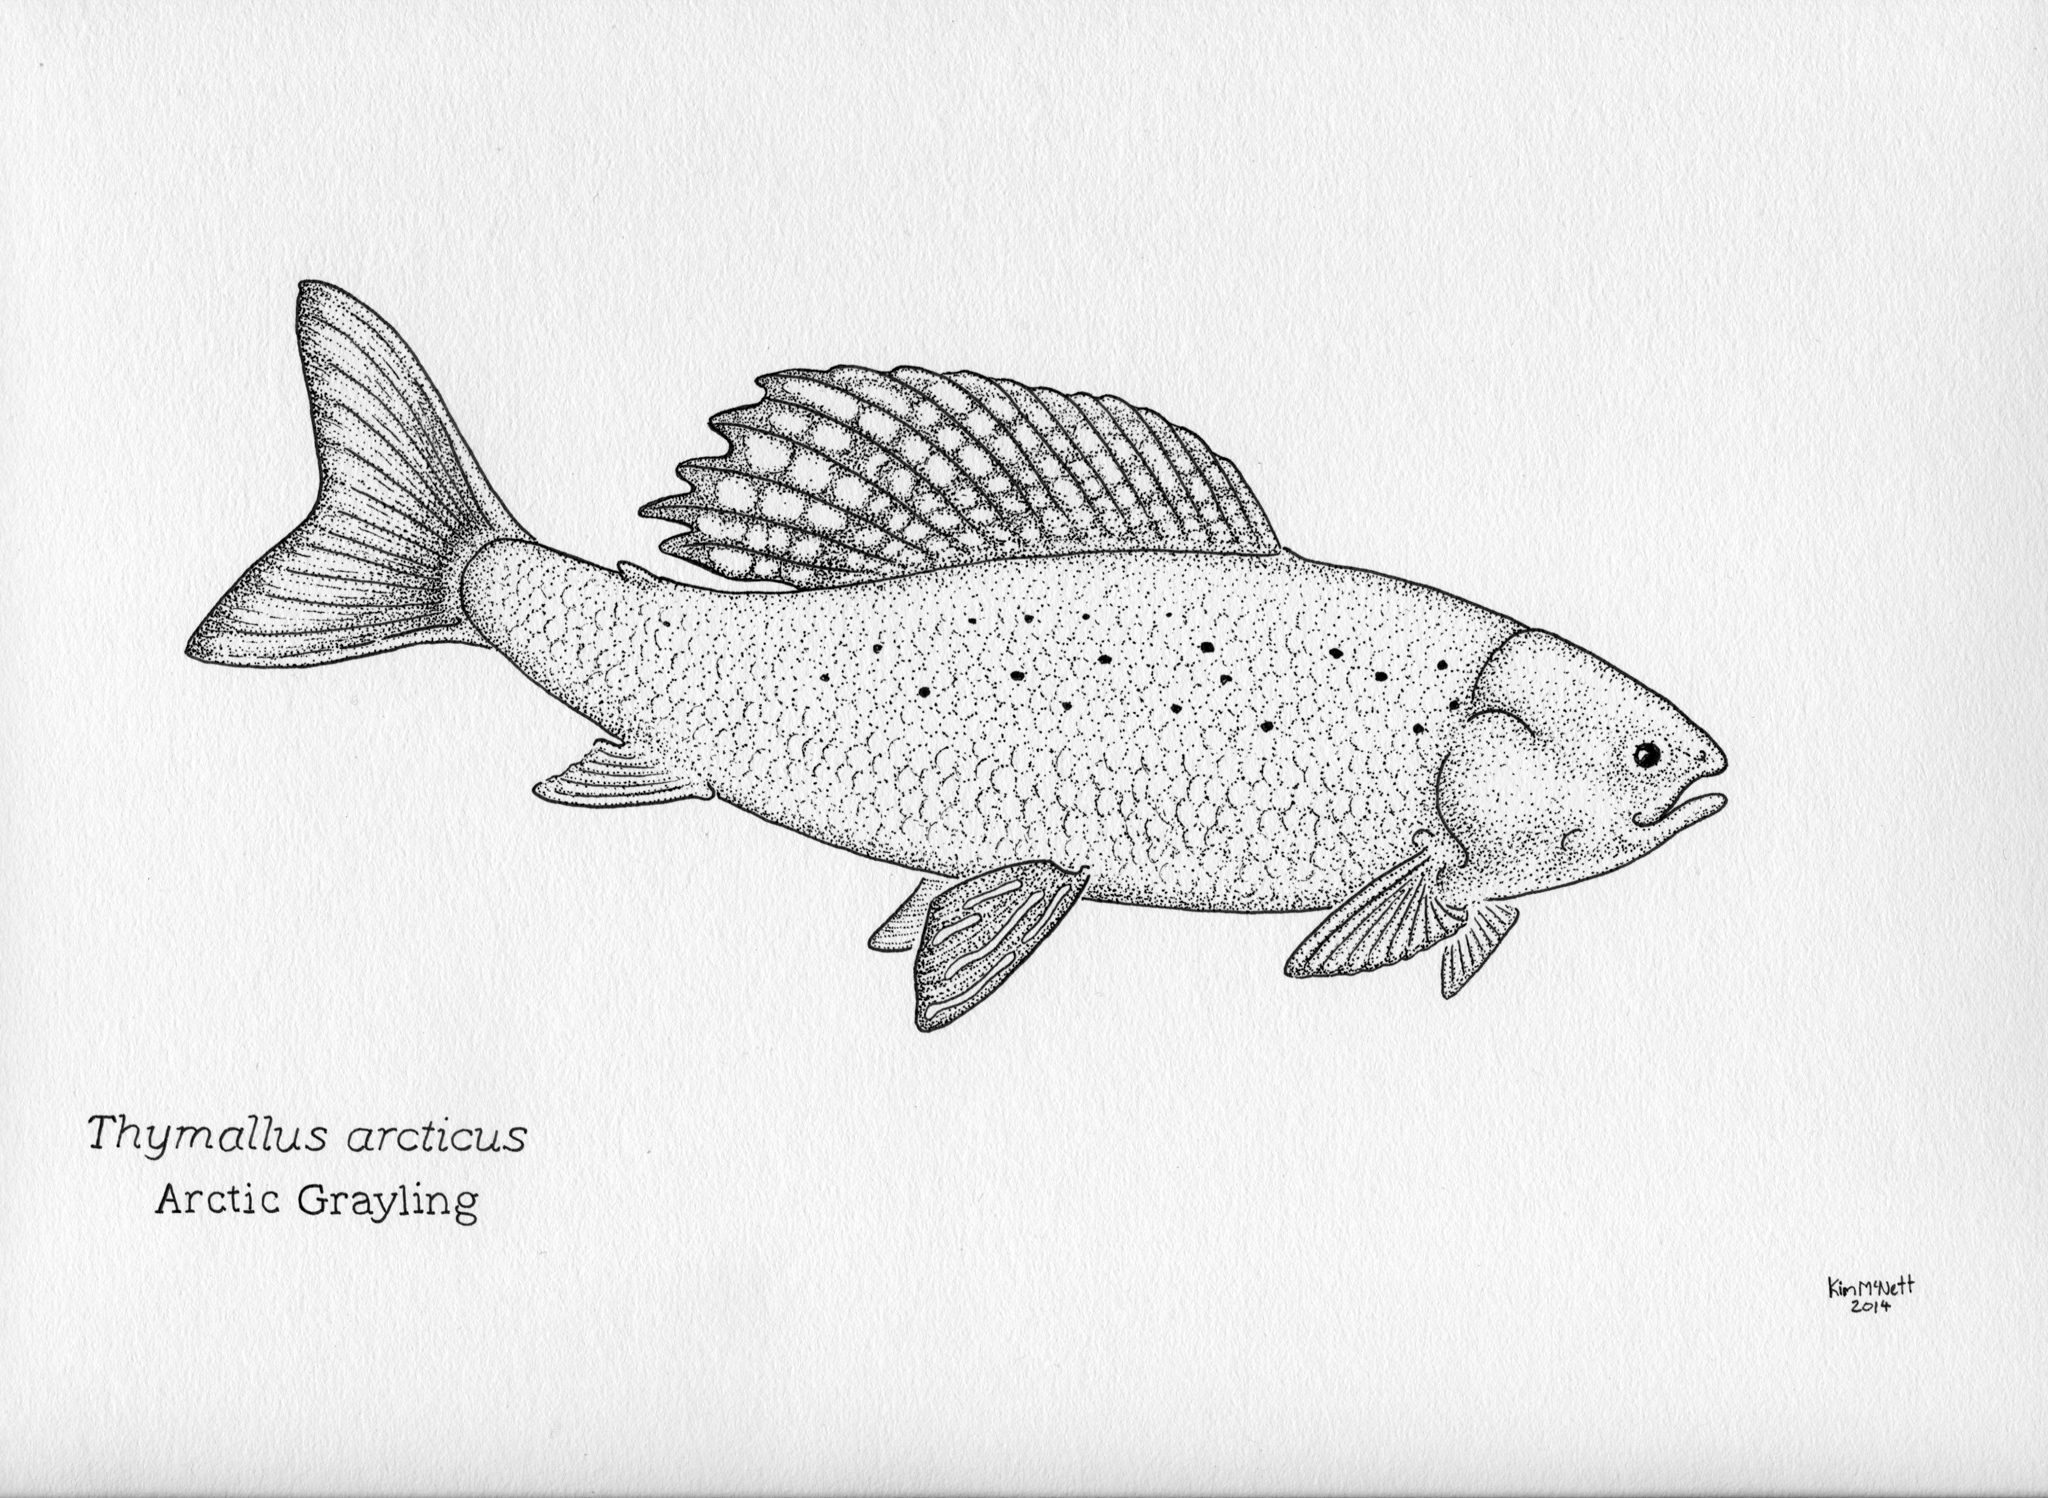 Arctic Grayling, Thymallus arcticus drawing, grayling drawing, Alaska, fishing